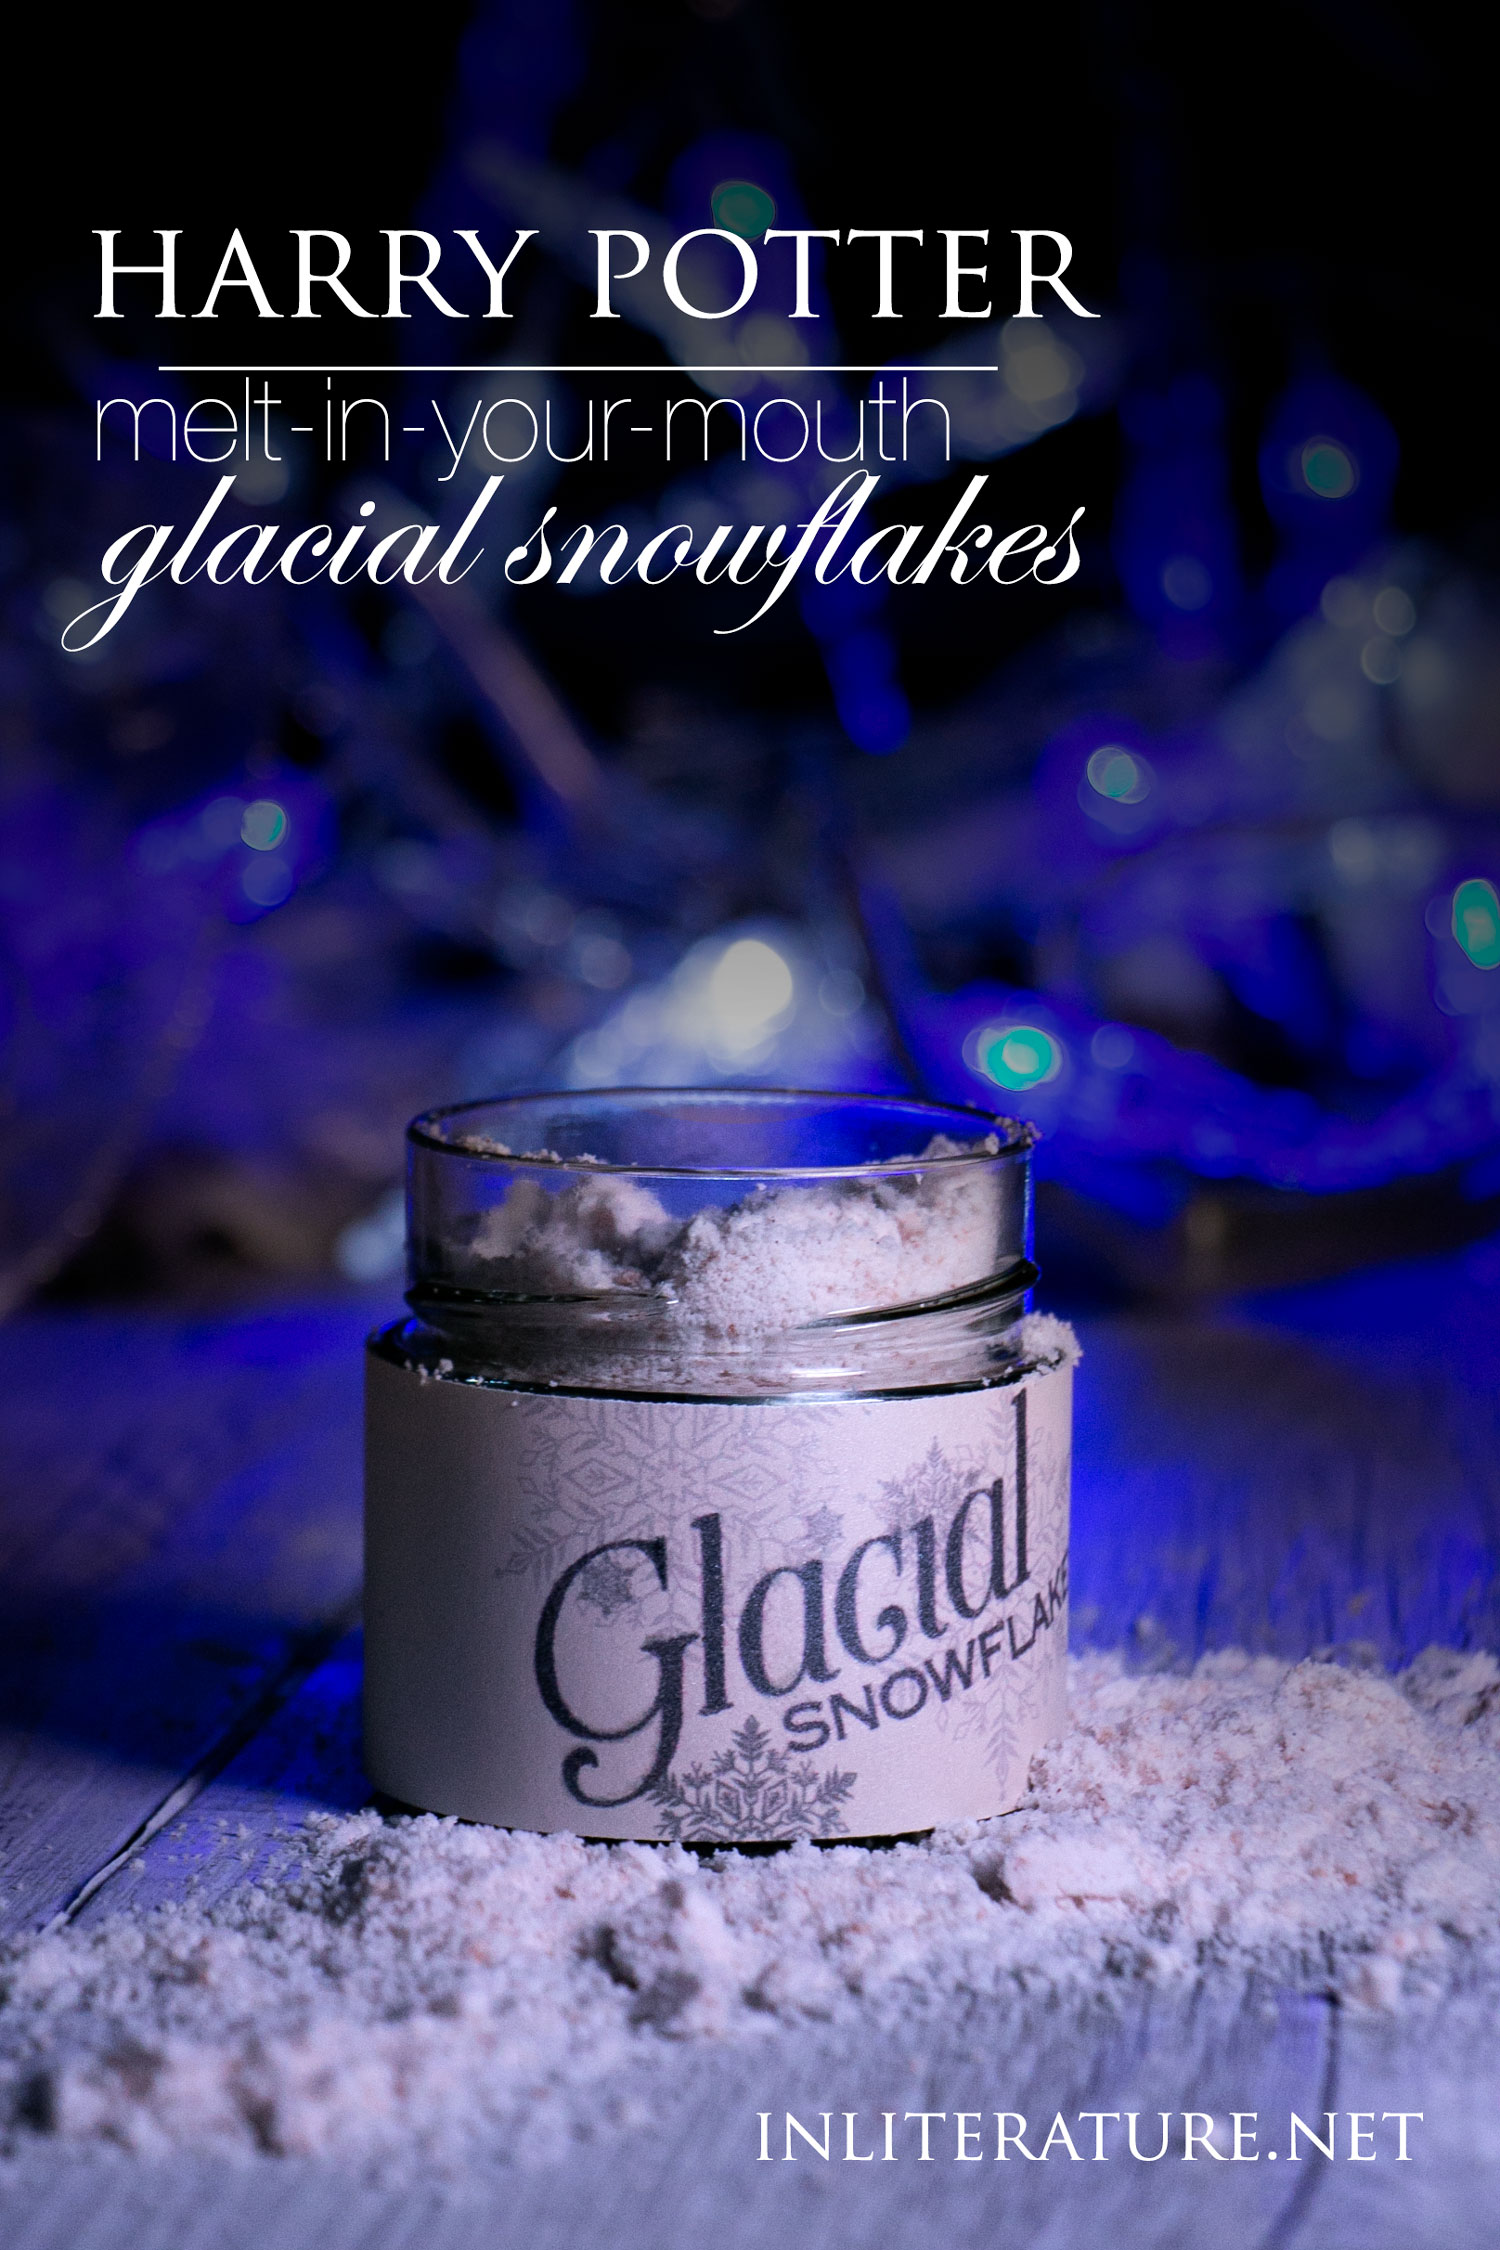 Jar of Honeydukes glacial snowflakes in powdered snow surrounded by fairy lights